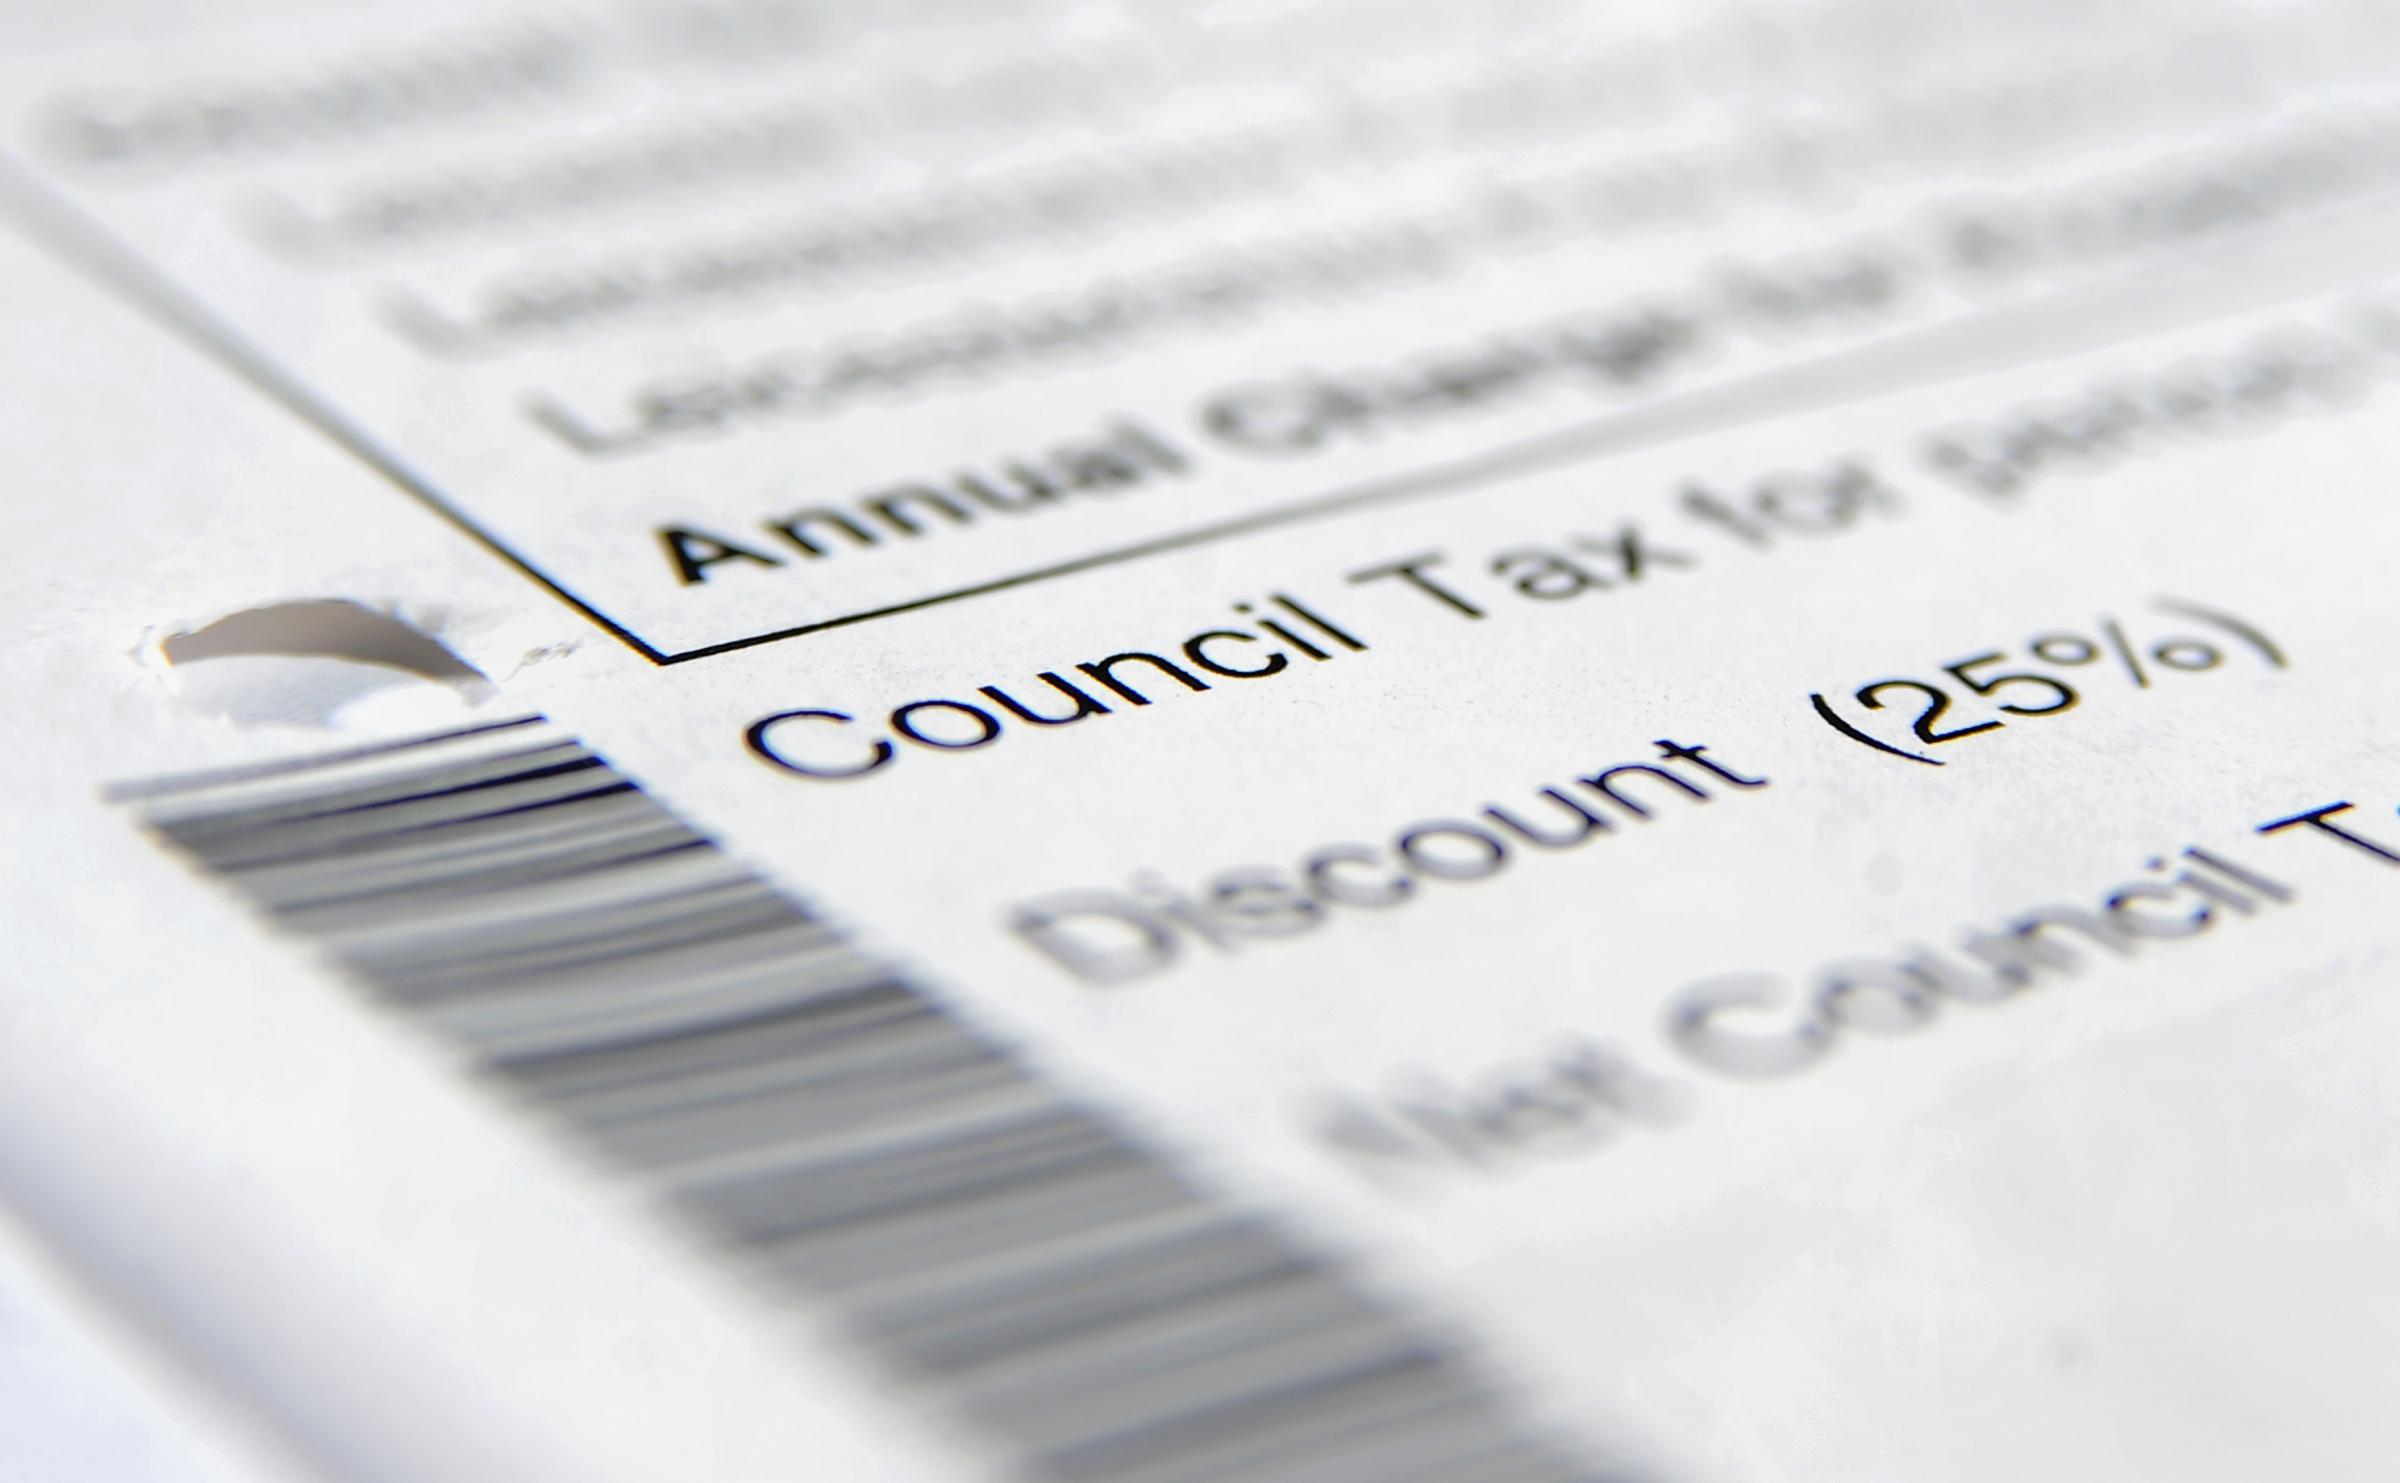 Only Renfrewshire Council and Glasgow City Council named elected officials who owed cash